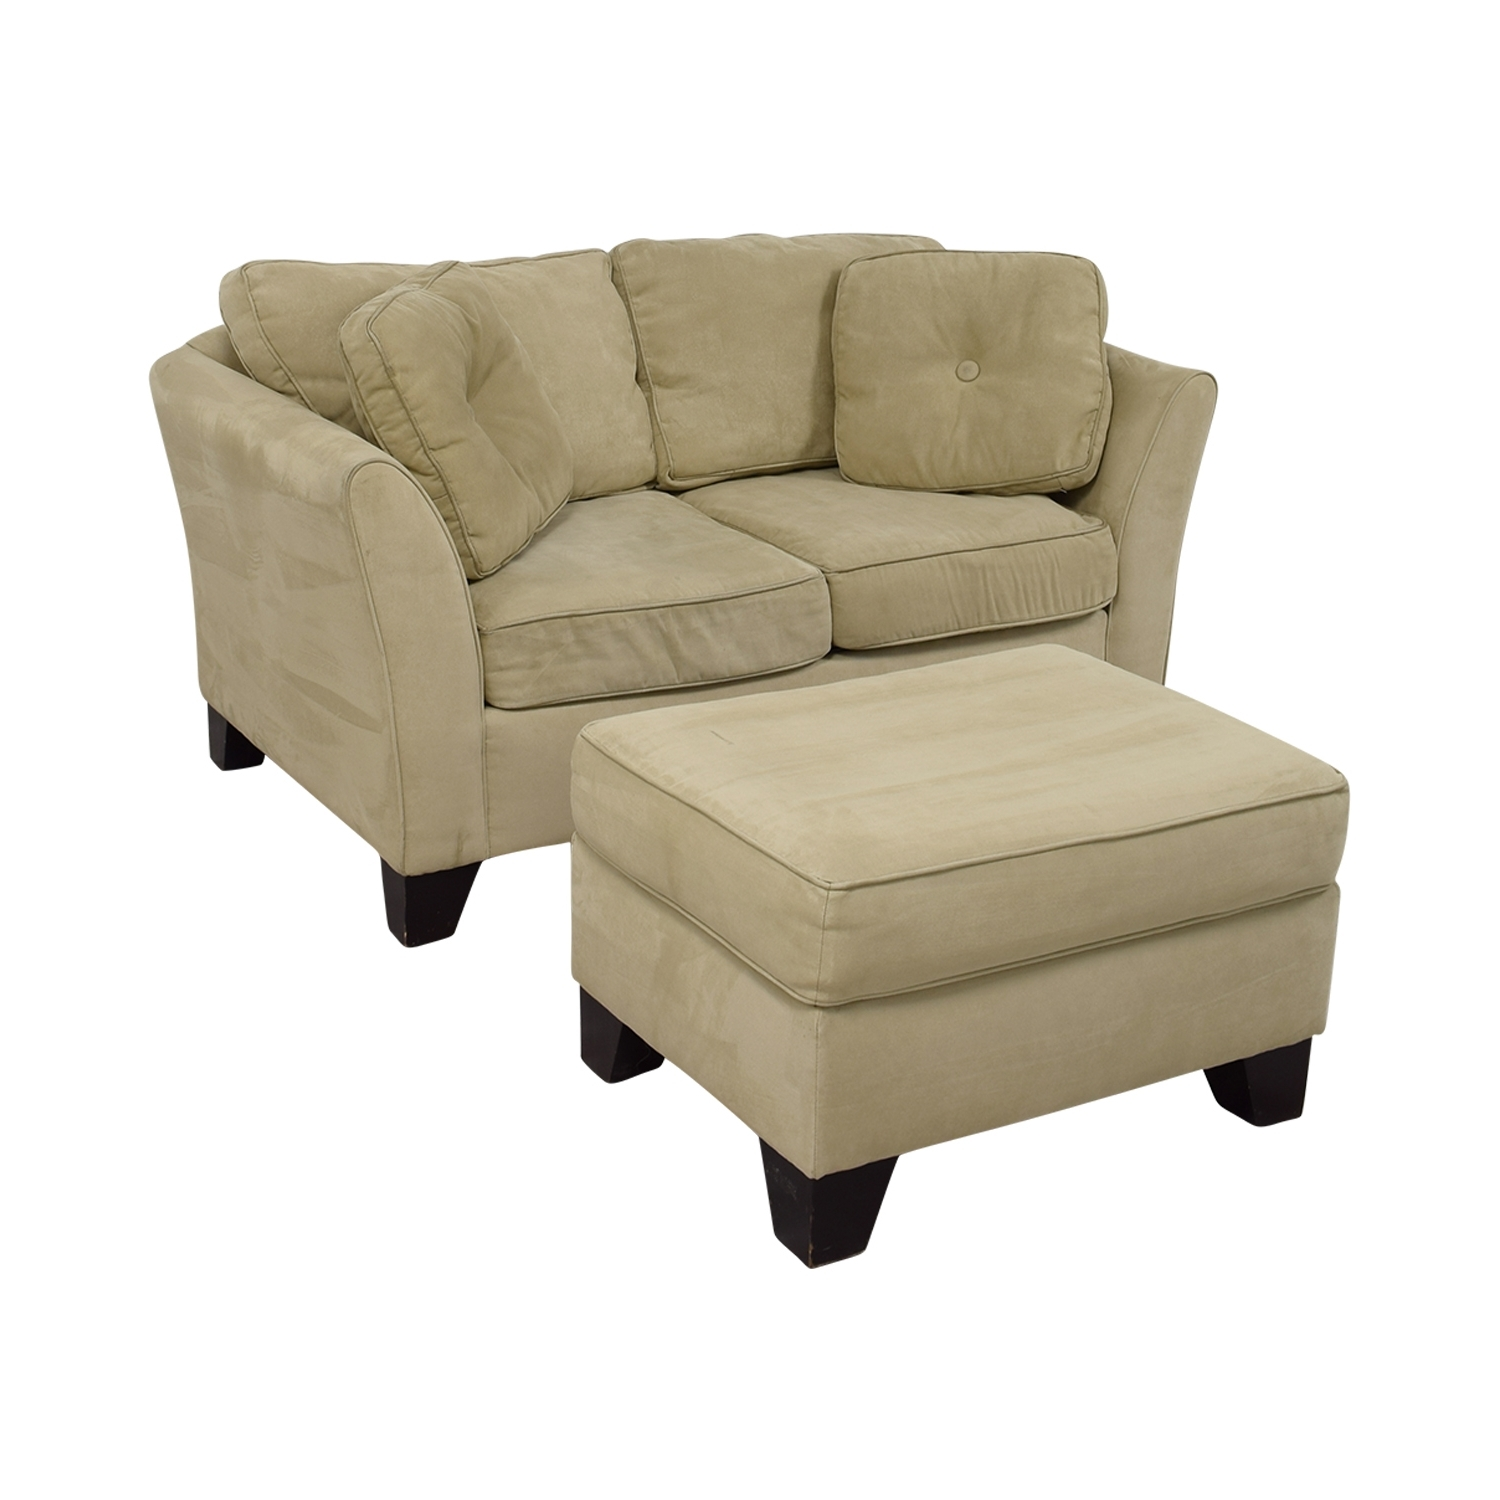 [%86% Off – Macy's Macy's Tan Loveseat With Ottoman / Sofas Regarding Most Current Loveseats With Ottoman|Loveseats With Ottoman With Popular 86% Off – Macy's Macy's Tan Loveseat With Ottoman / Sofas|Most Popular Loveseats With Ottoman With 86% Off – Macy's Macy's Tan Loveseat With Ottoman / Sofas|Well Known 86% Off – Macy's Macy's Tan Loveseat With Ottoman / Sofas With Loveseats With Ottoman%] (View 13 of 20)